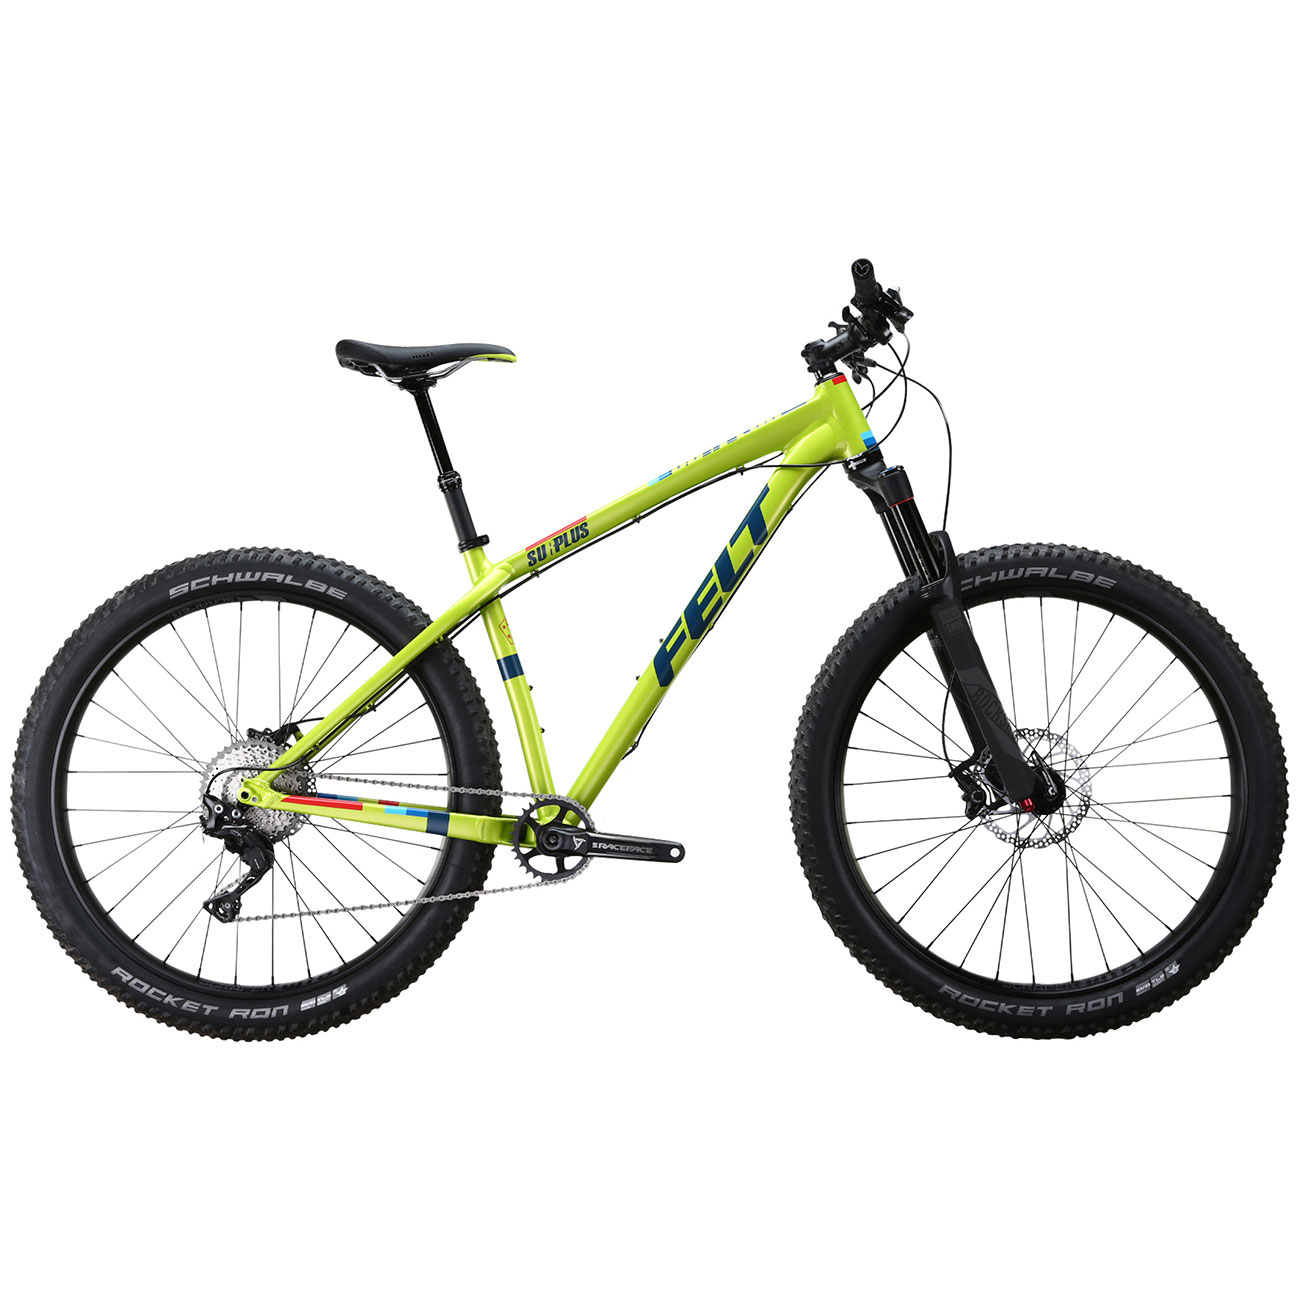 Felt Surplus 10 Plus Mountain Bike - 2017